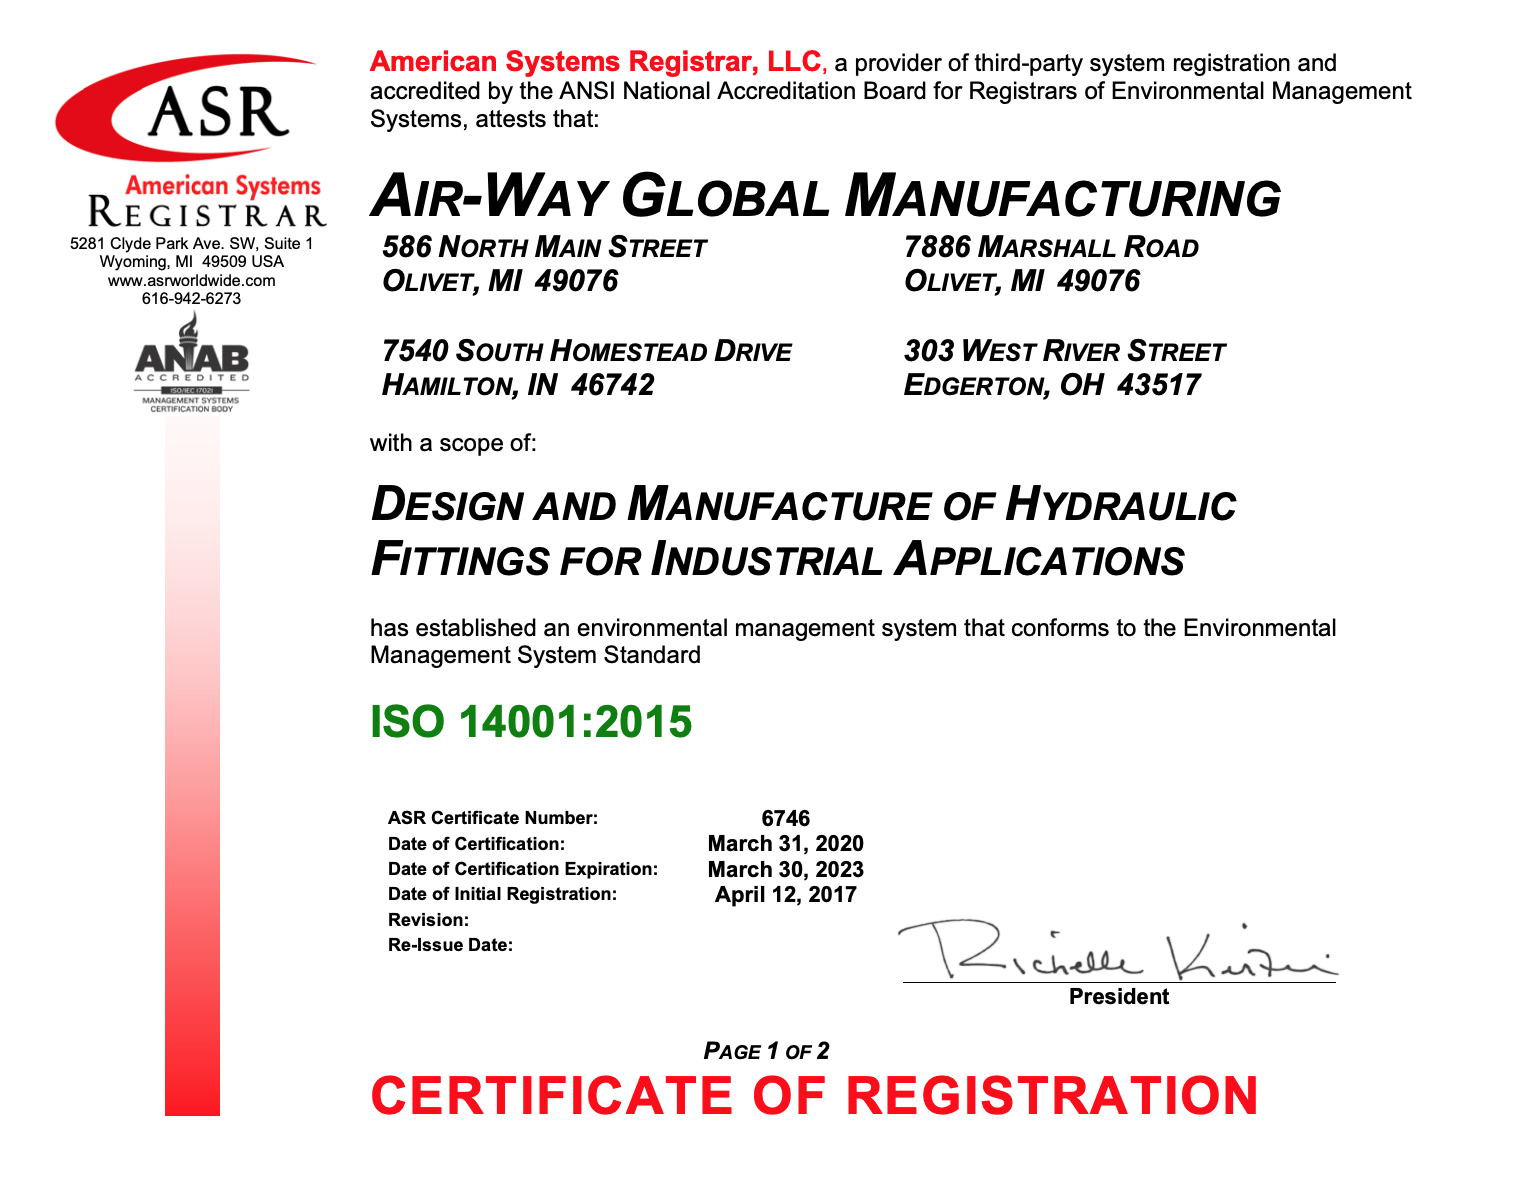 Air-Way Manufacturing ISO 14001:2015 Certificate 3-30-23